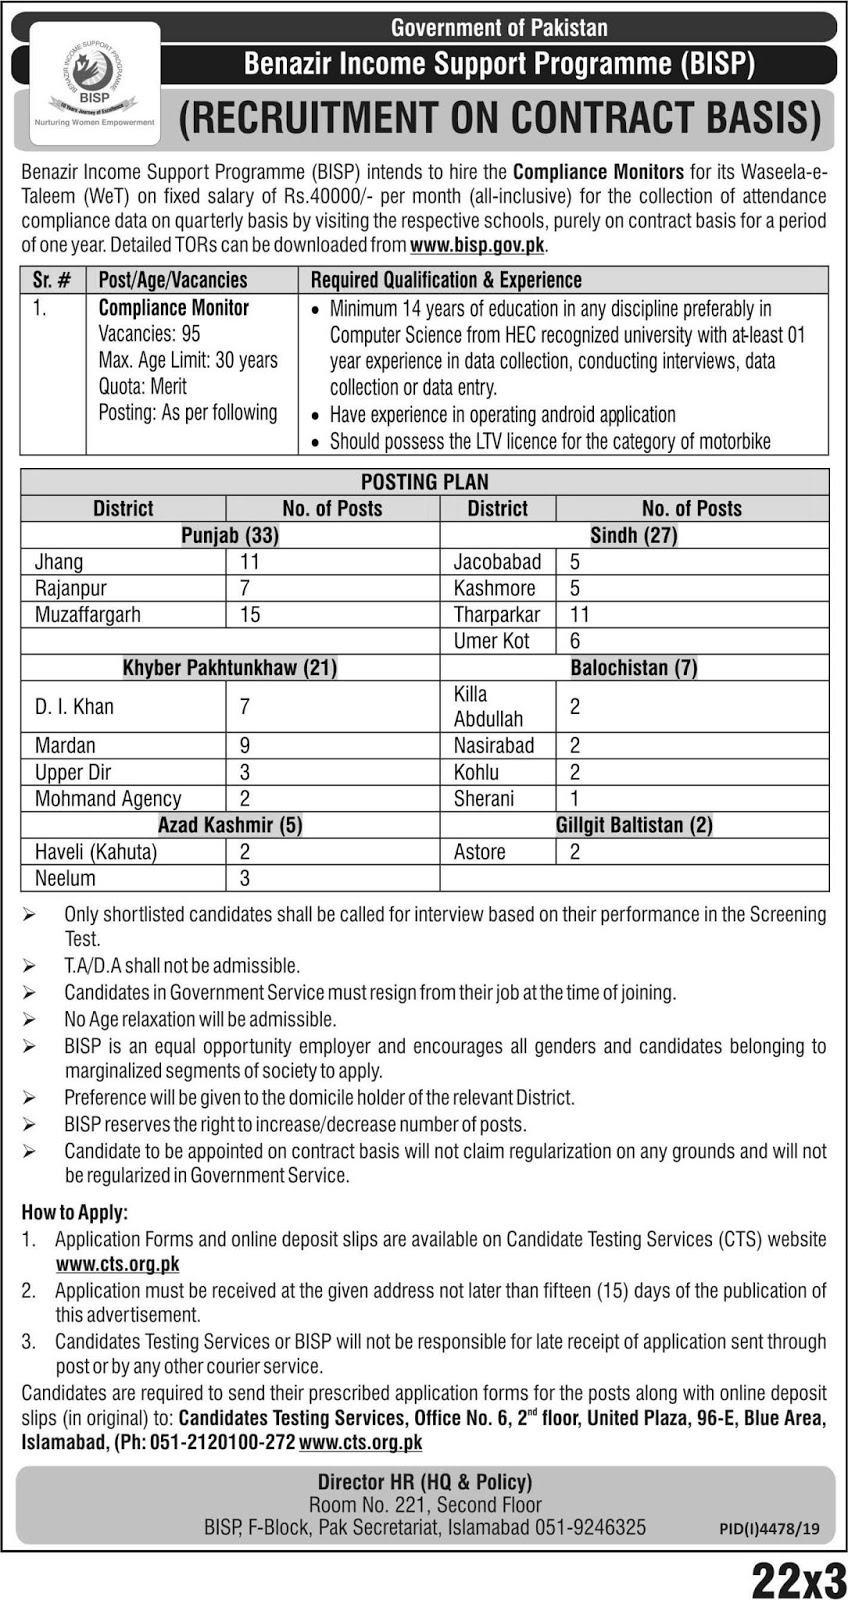 BISP Jobs 2020 For Compliance Monitors via CTS Testing Service